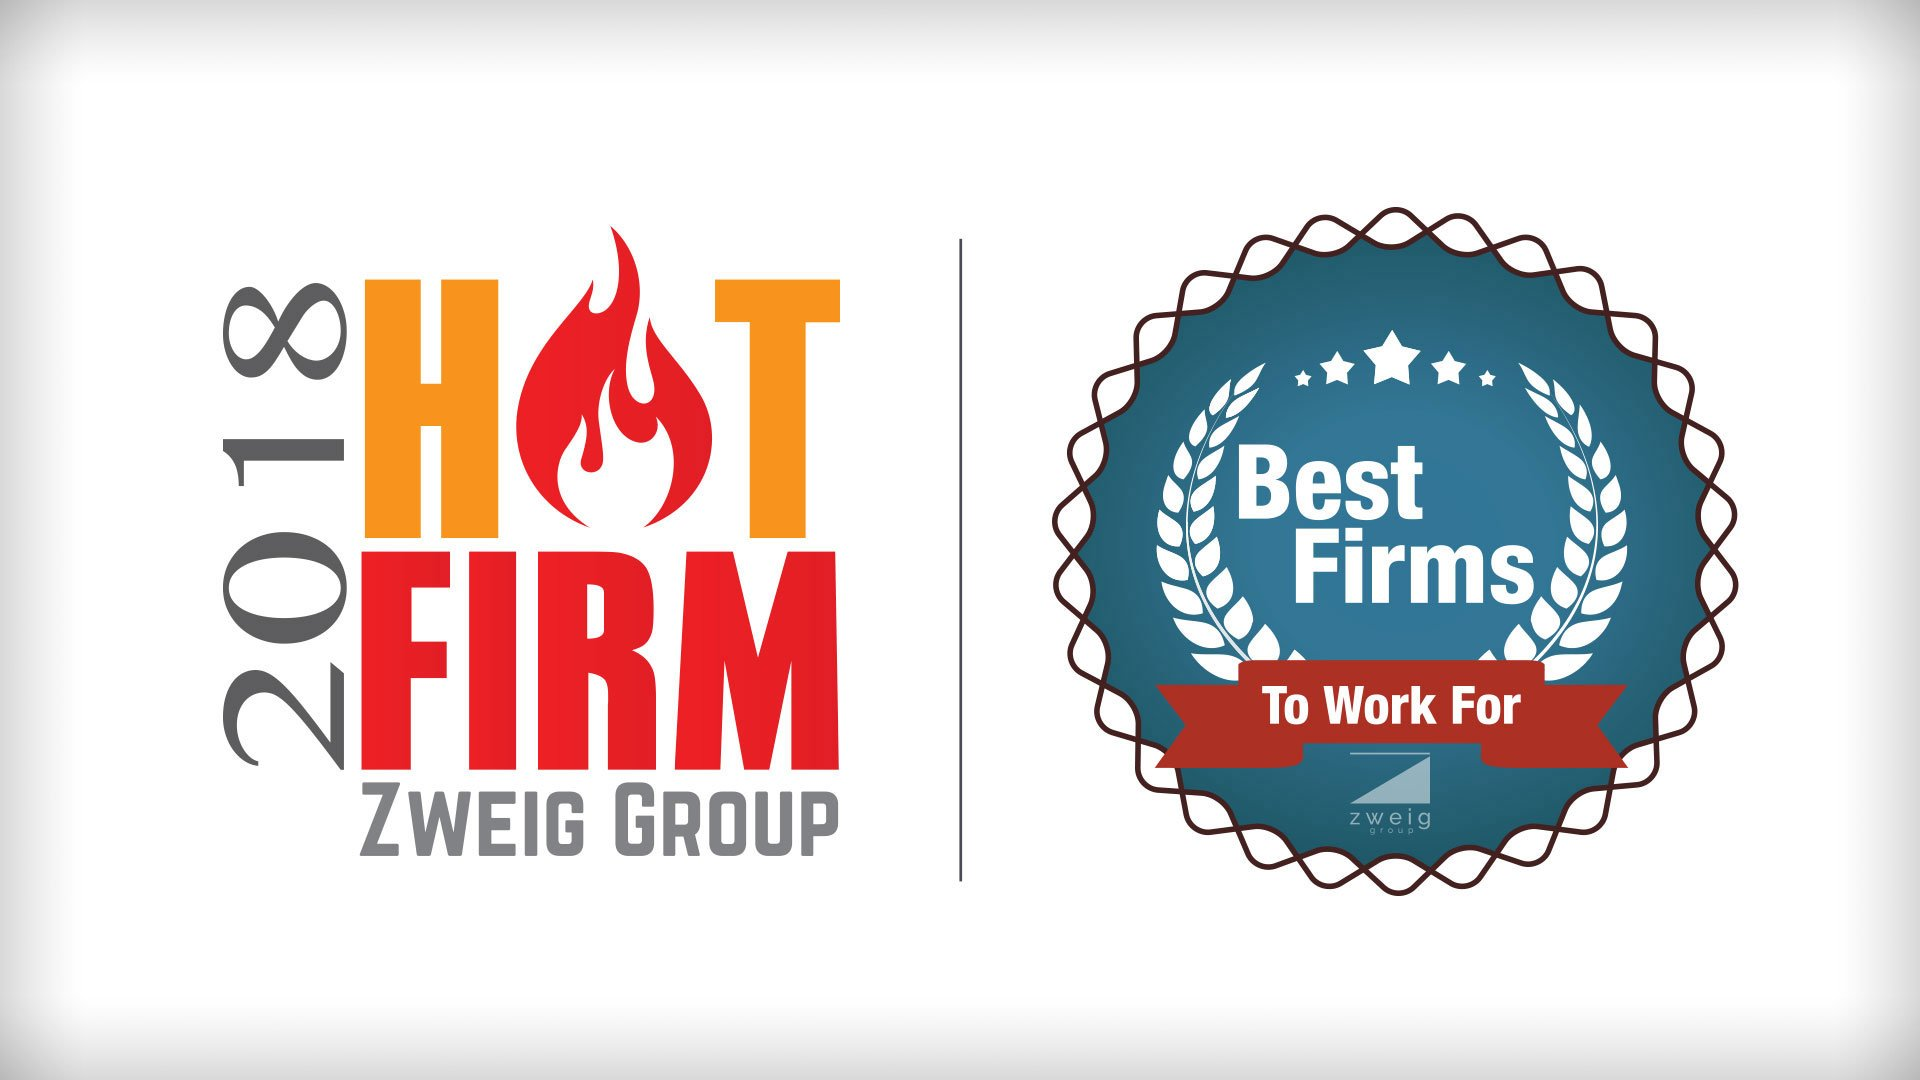 MPS Ranks Again in 2018 as Hot Firm, Best Firm to Work For